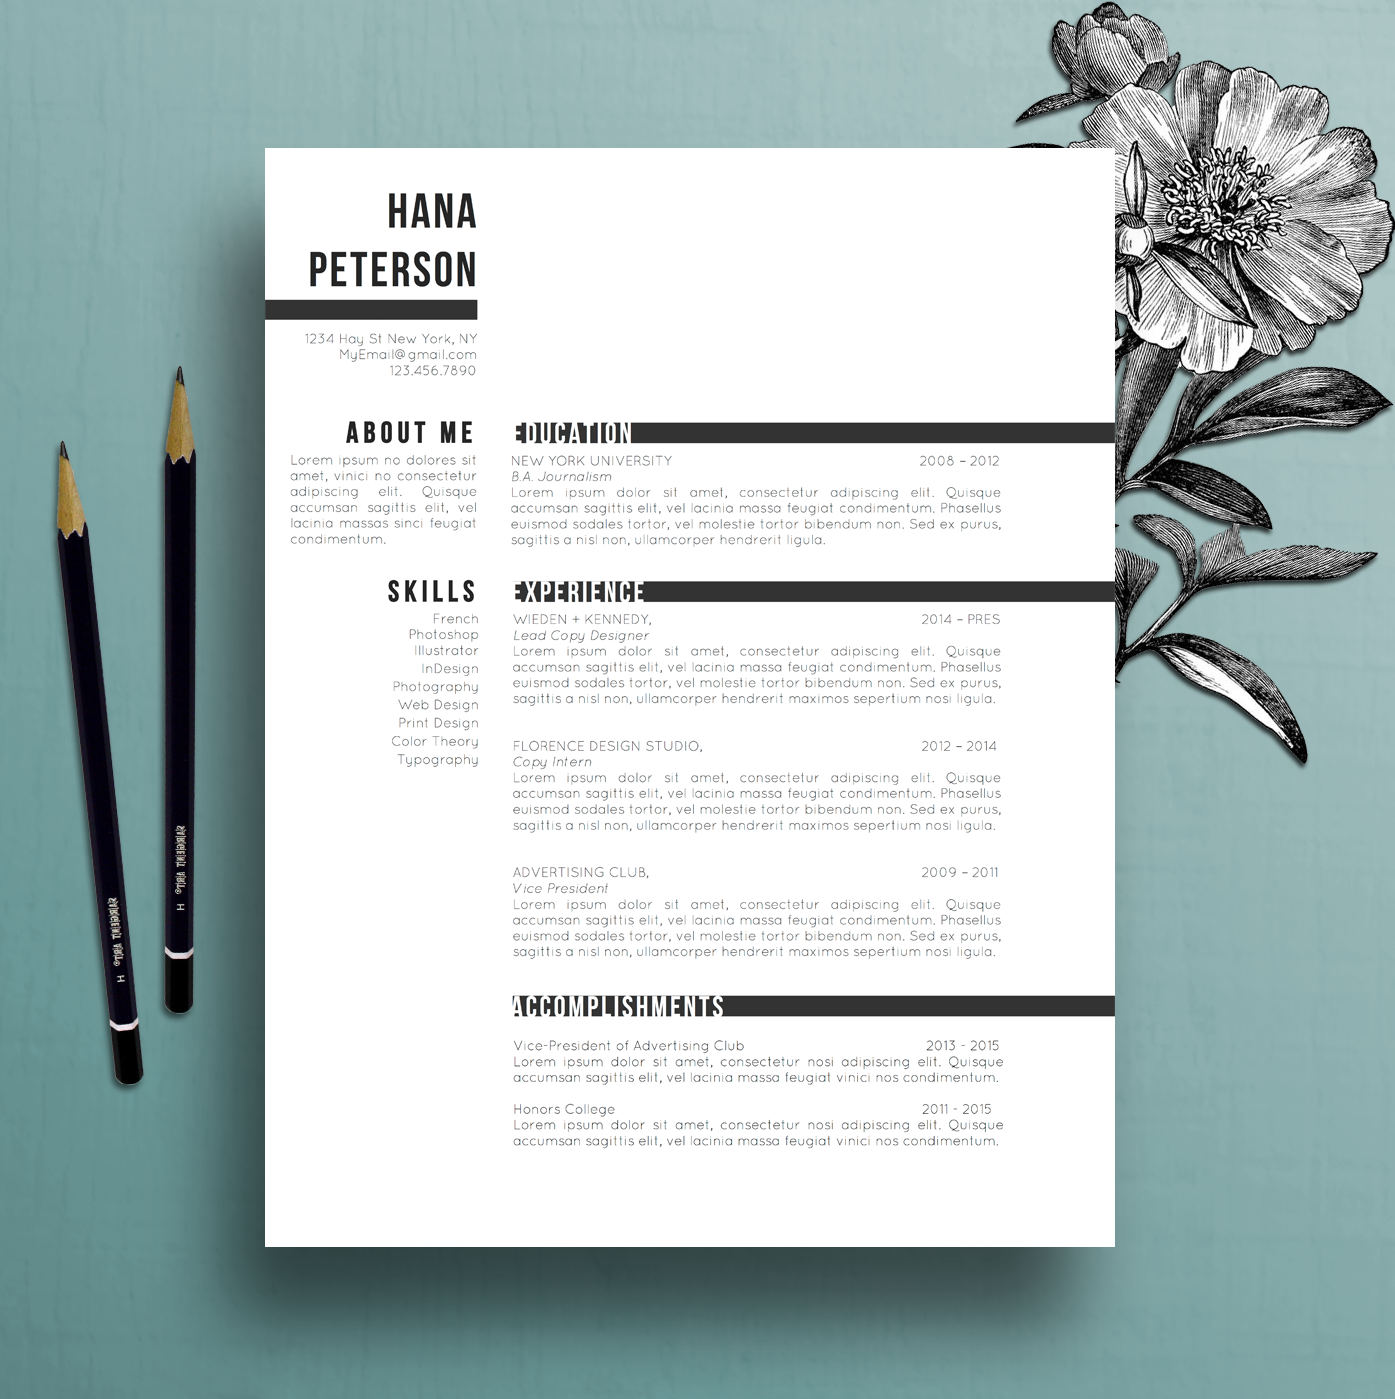 professional resume template  cover letter template  references template  ms word  creative